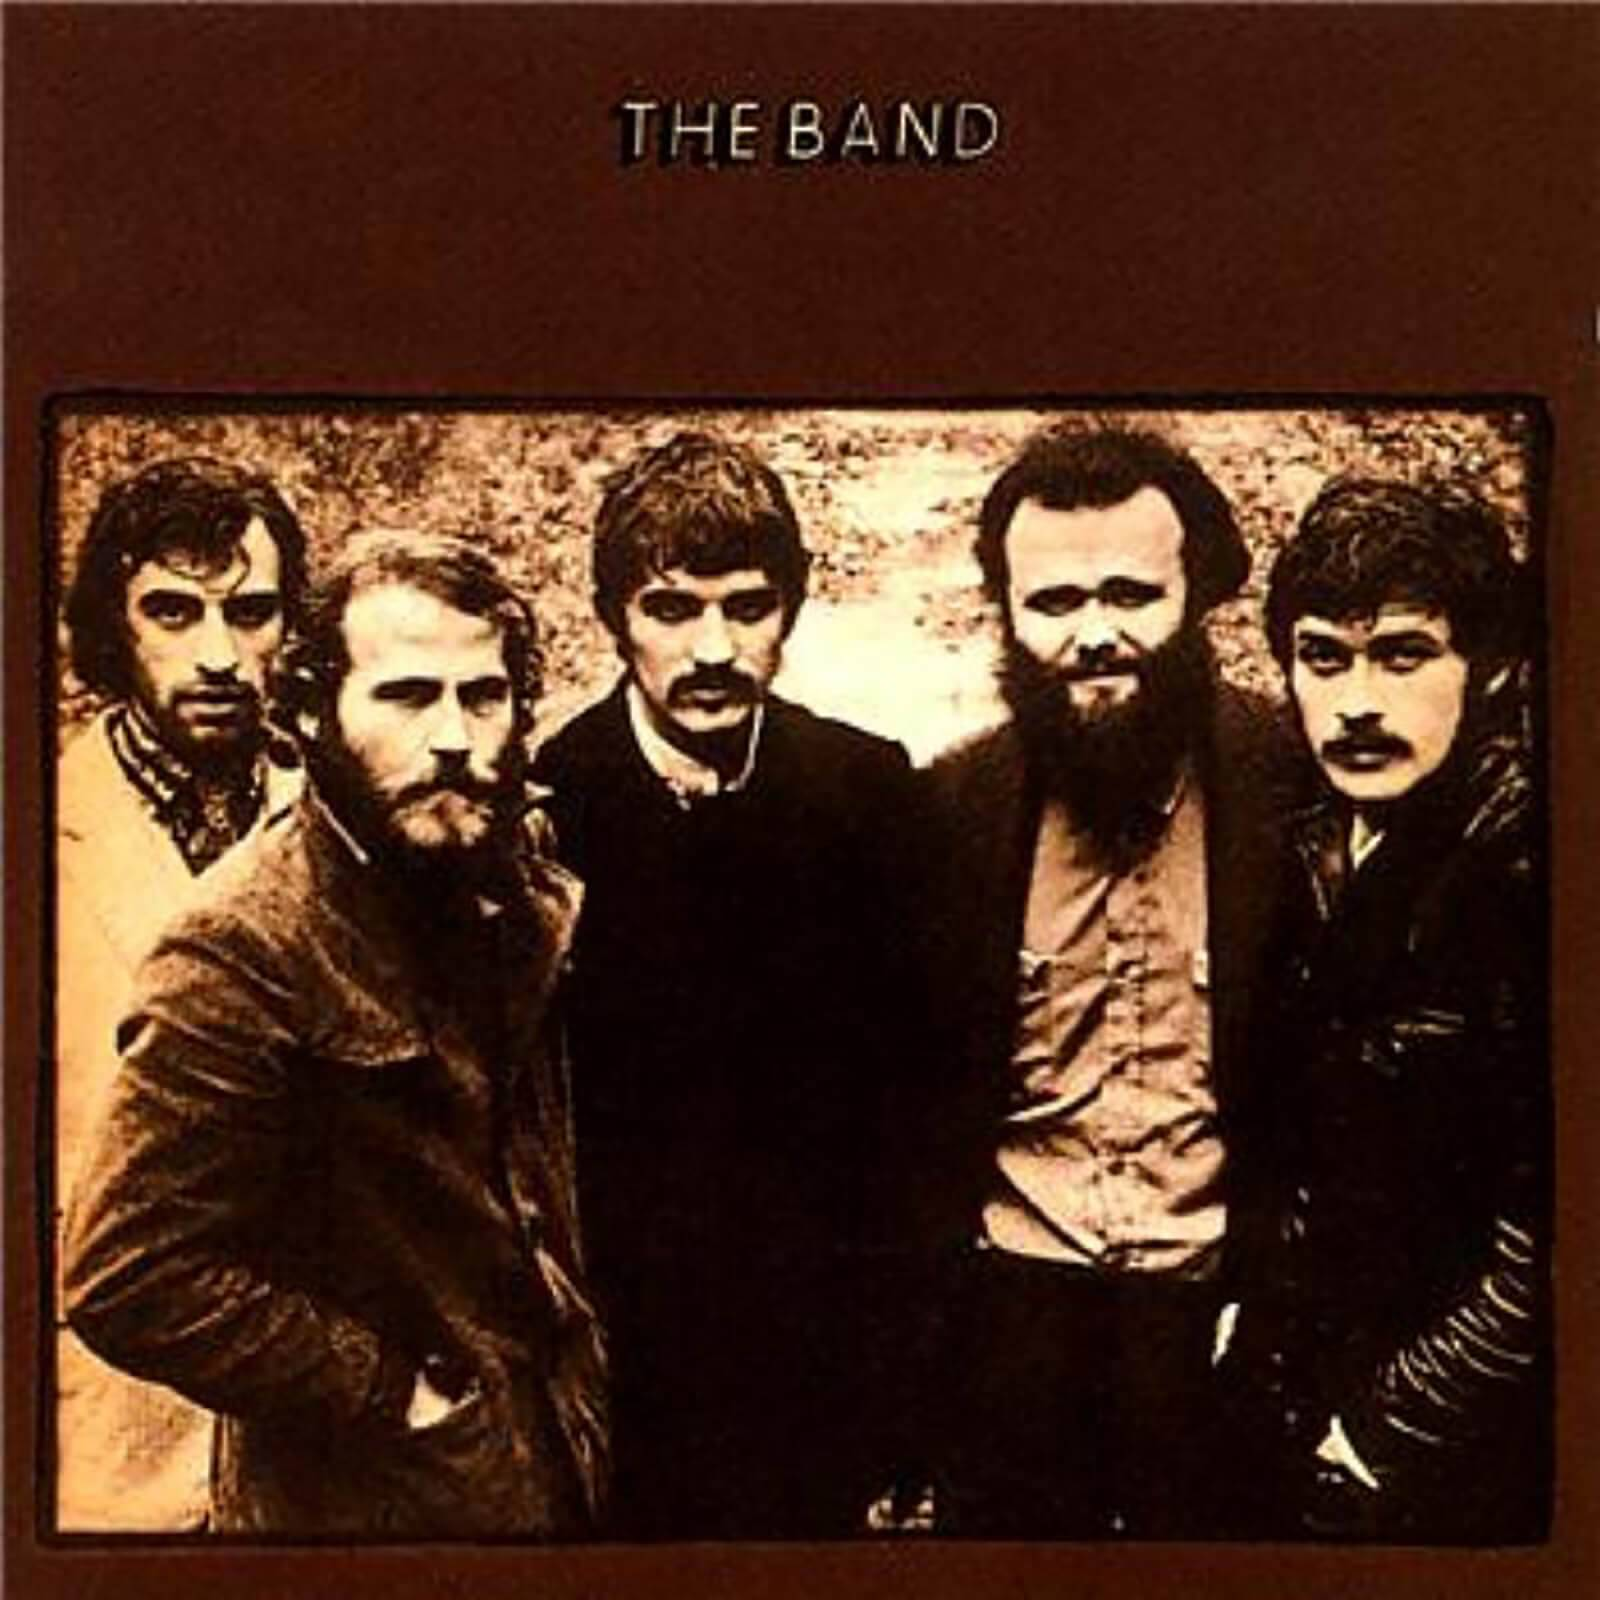 UMC - Capitol The Band - The Band 12 Inch LP